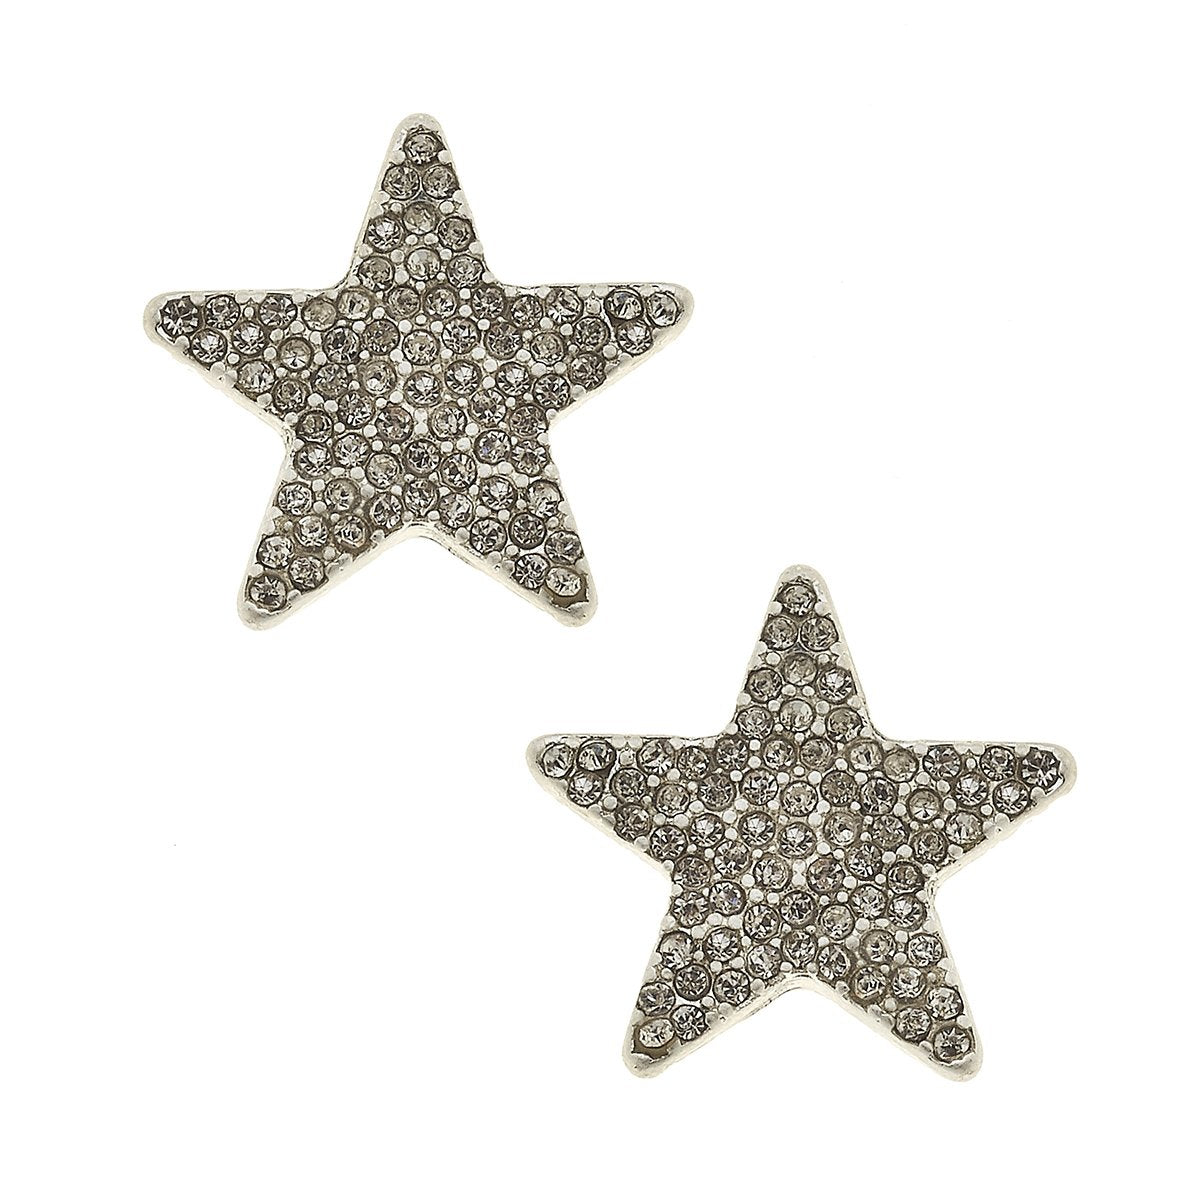 Star Pave Stud Earrings in Worn Silver